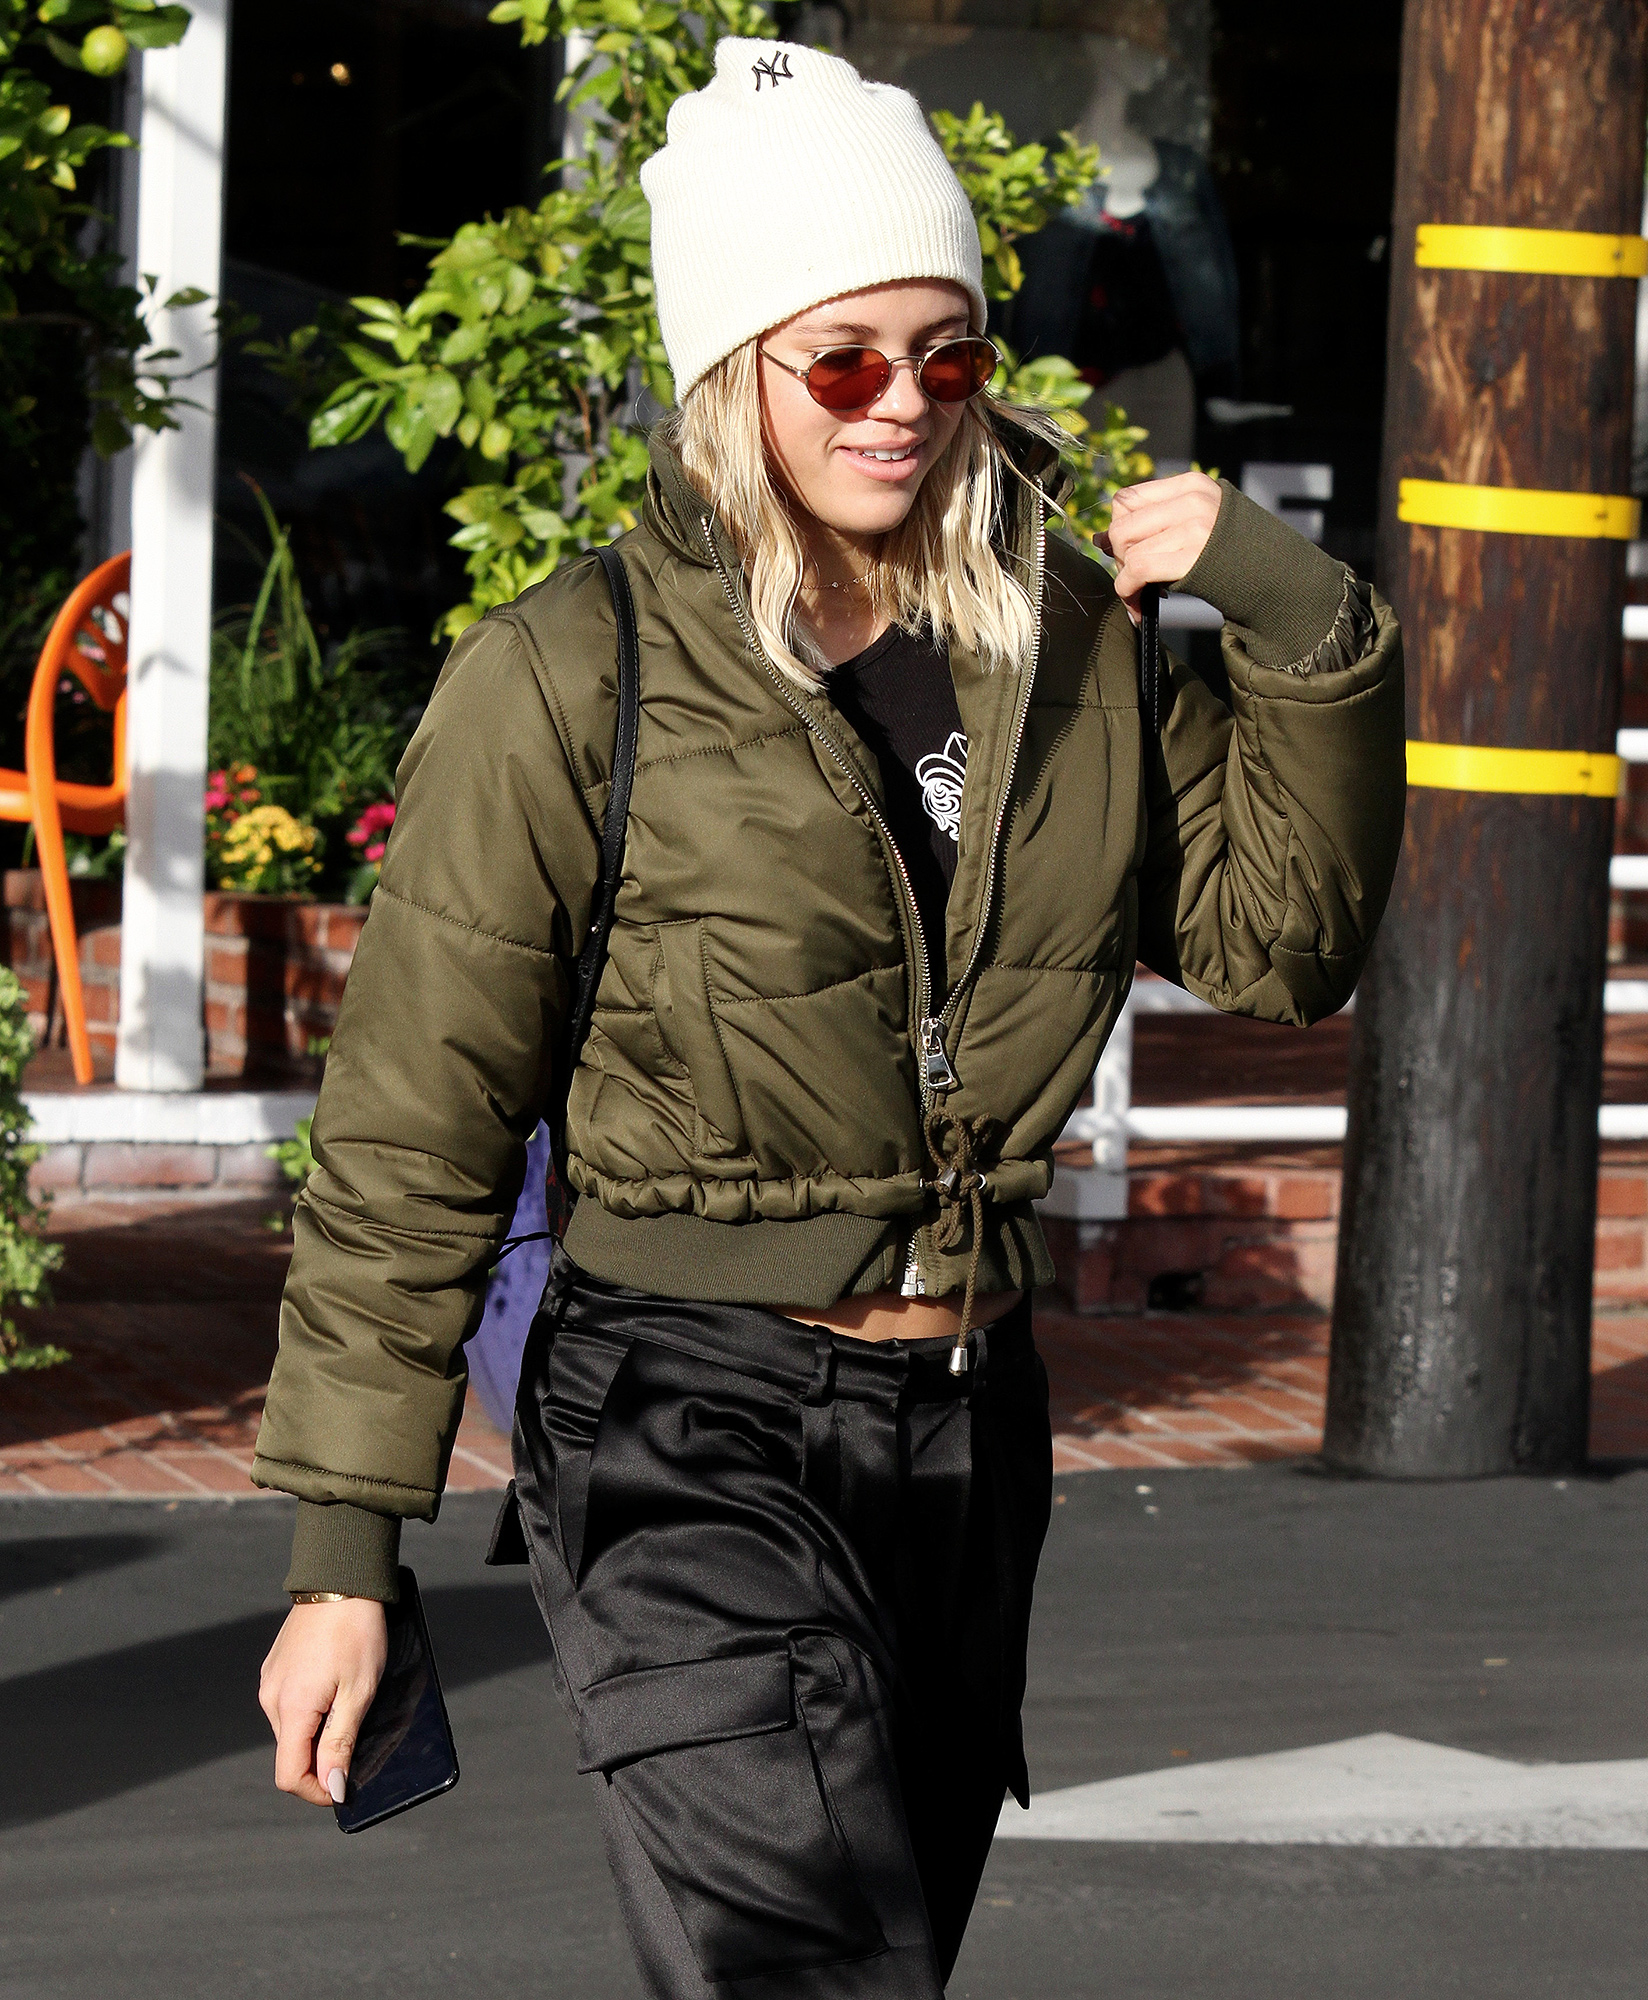 Sofia Richie lunches with friends at Fred Segal in West Hollywood